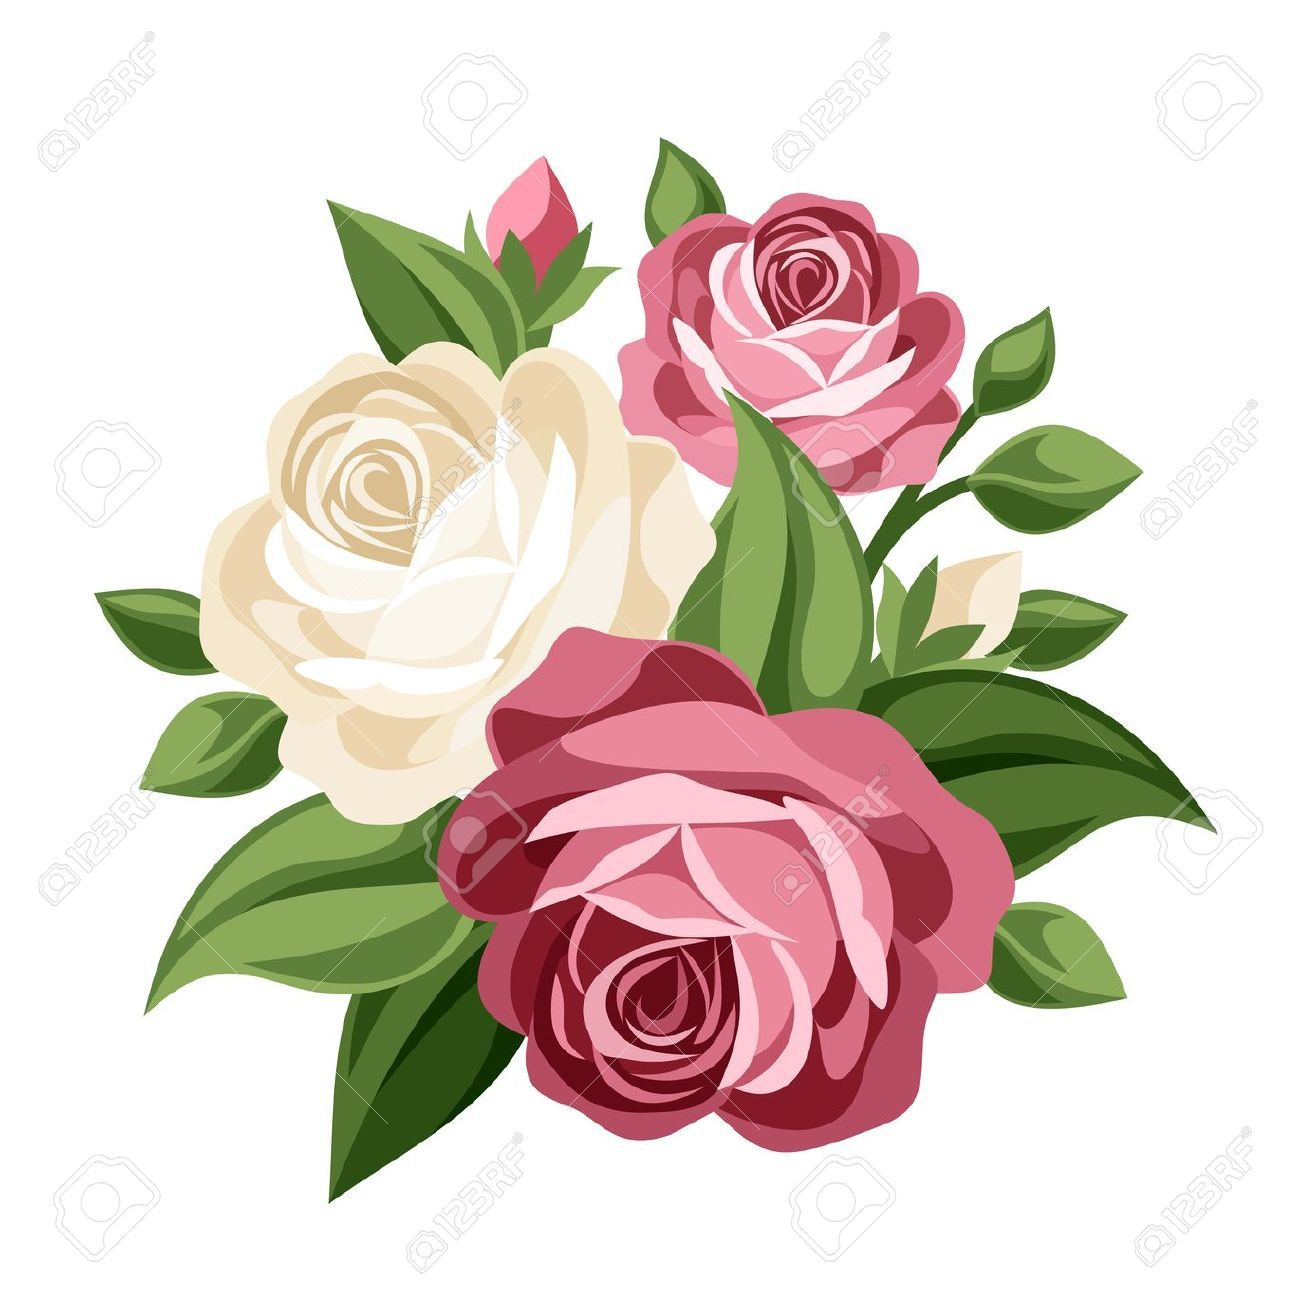 Rose Stock Photos, Pictures, Royalty Free Rose Images And